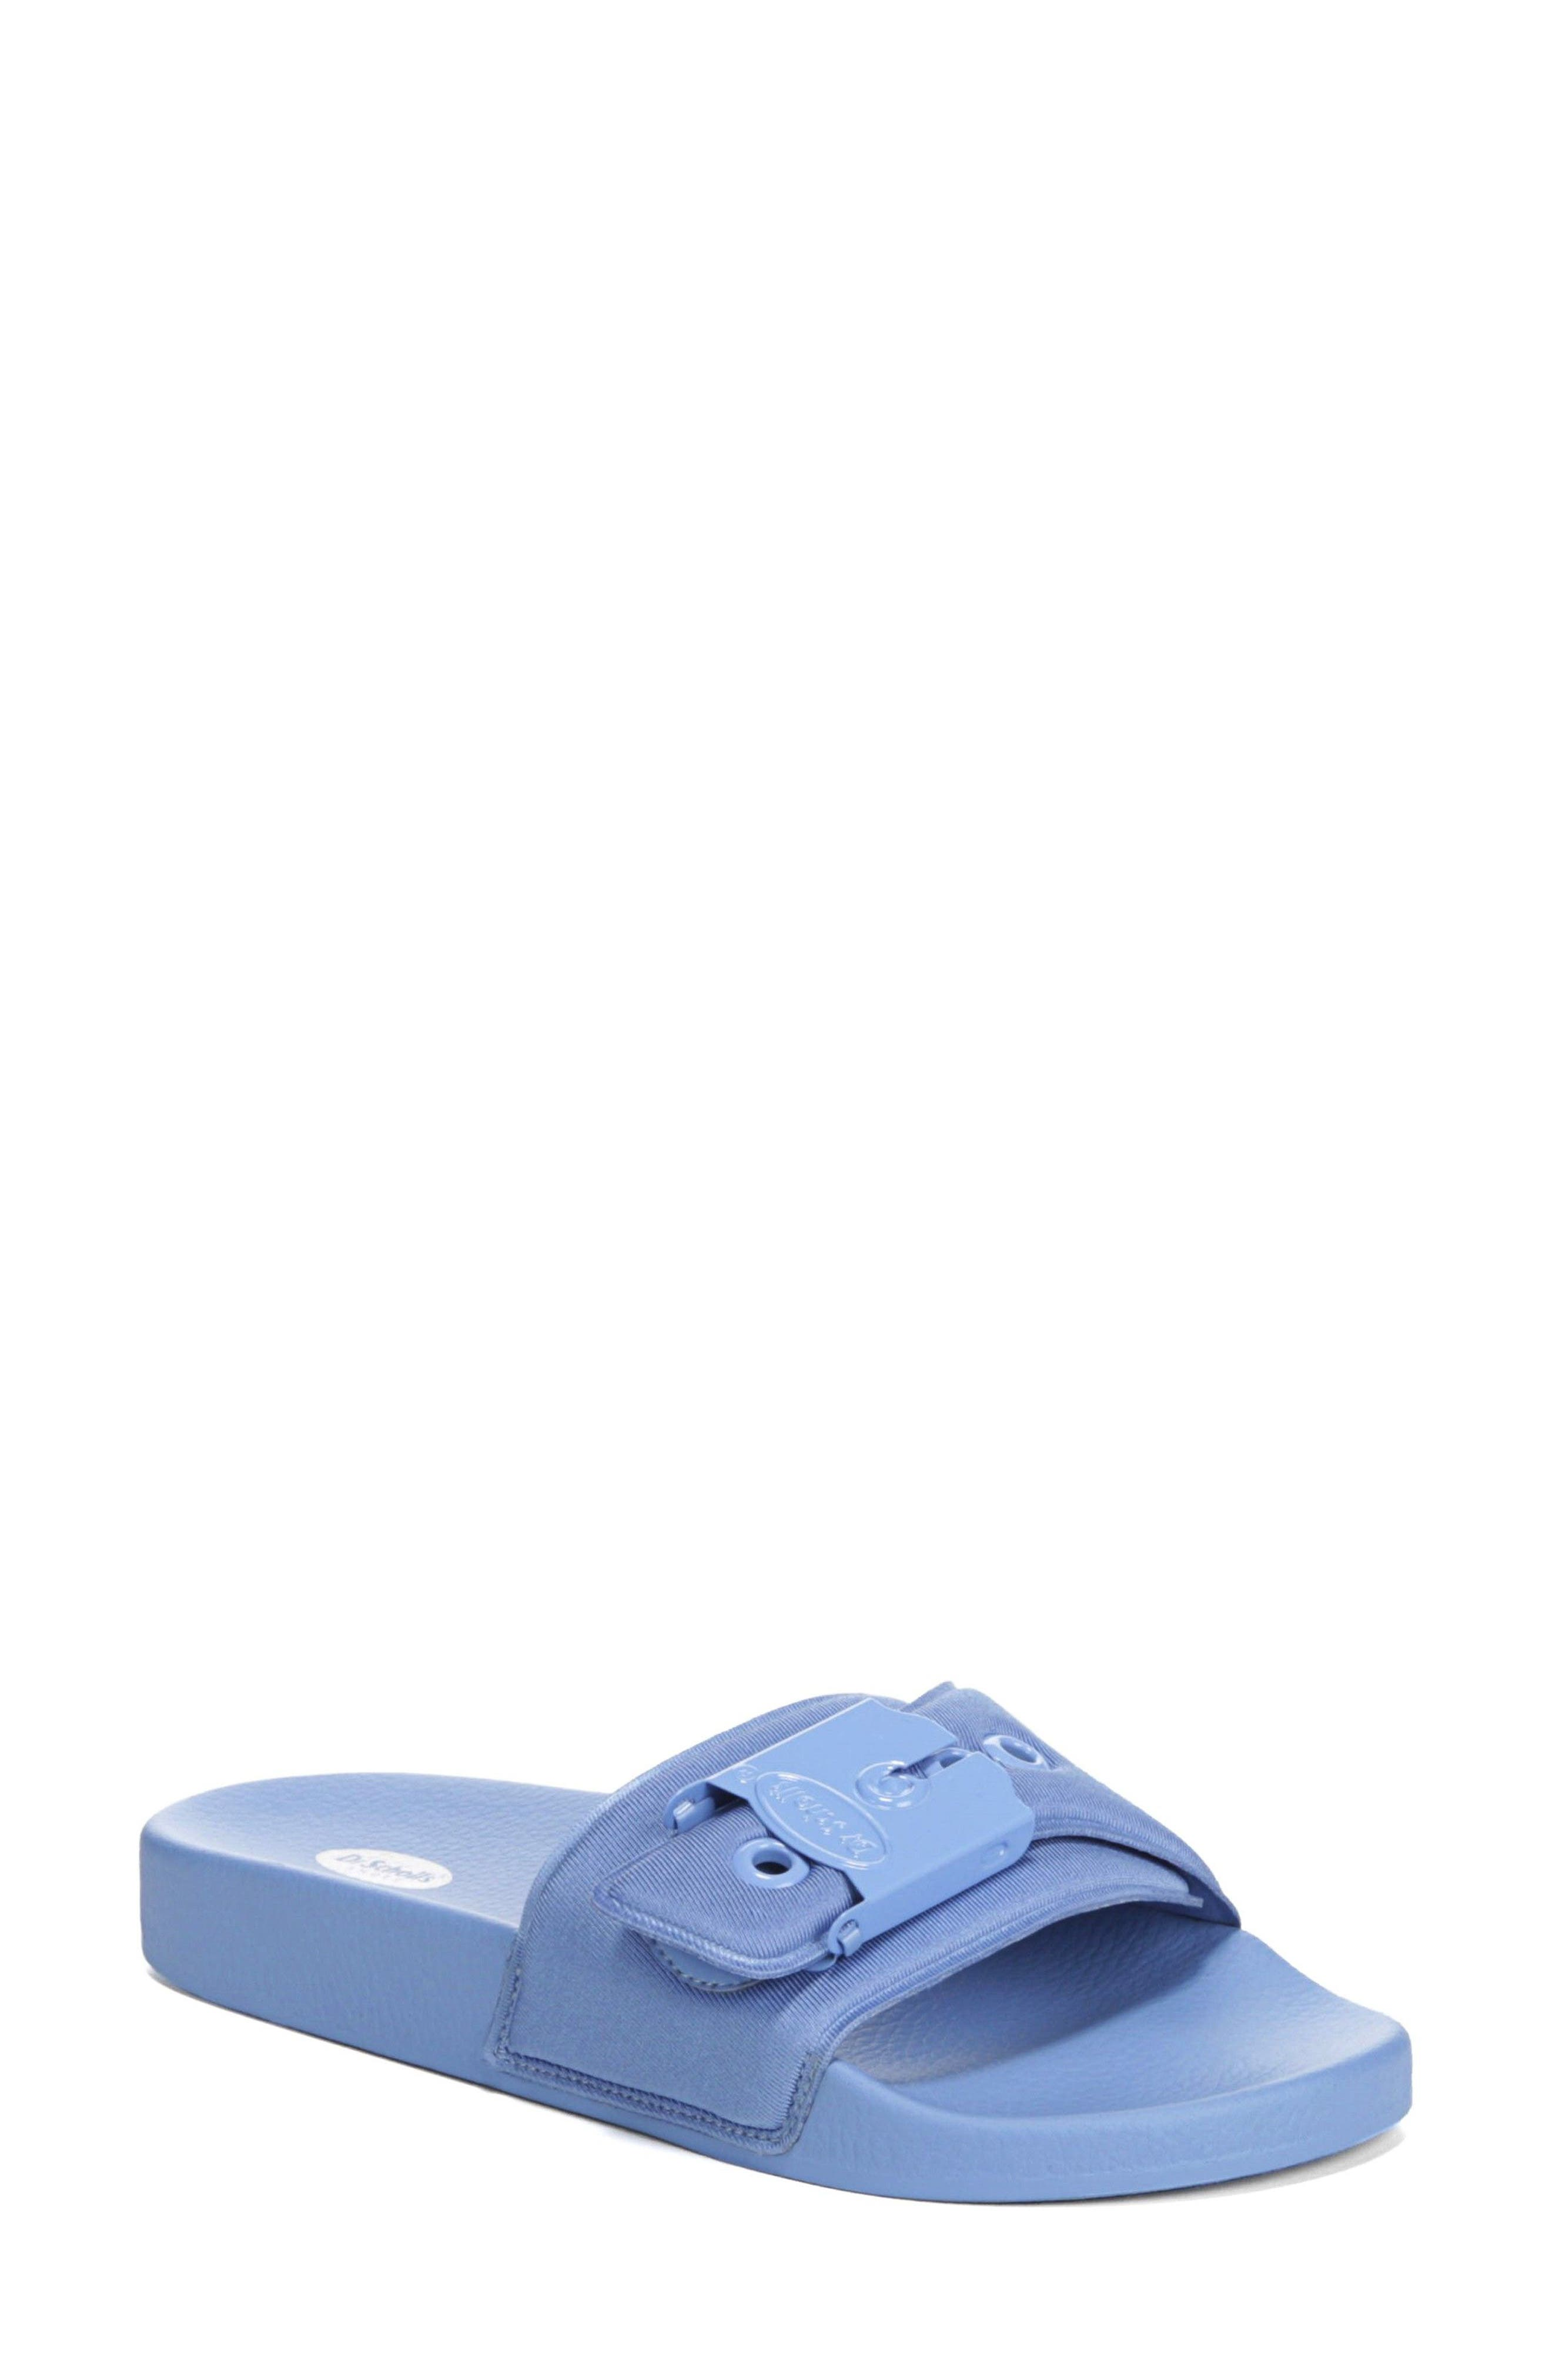 Dr. Scholl's Original Pool Slide Sandal (Women)